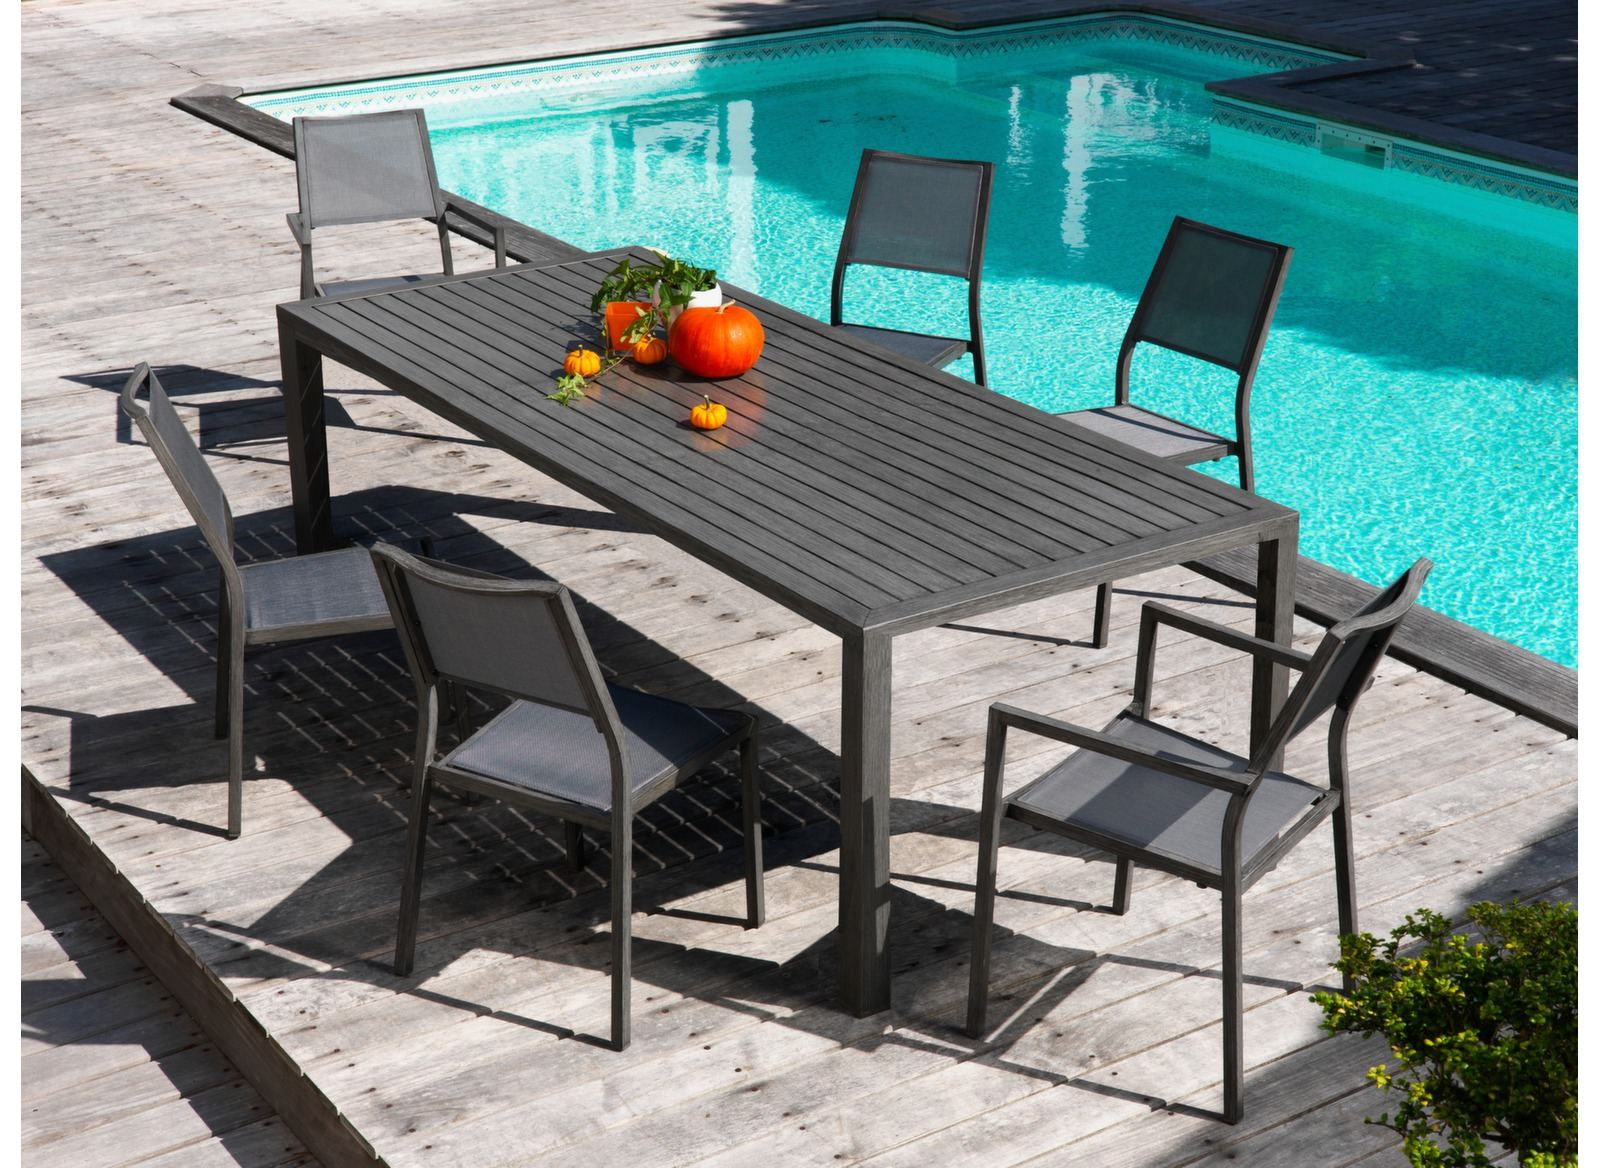 Table milano 220 x 100 cm finition brush tables de jardin meubles de jar - Cote table vente en ligne ...